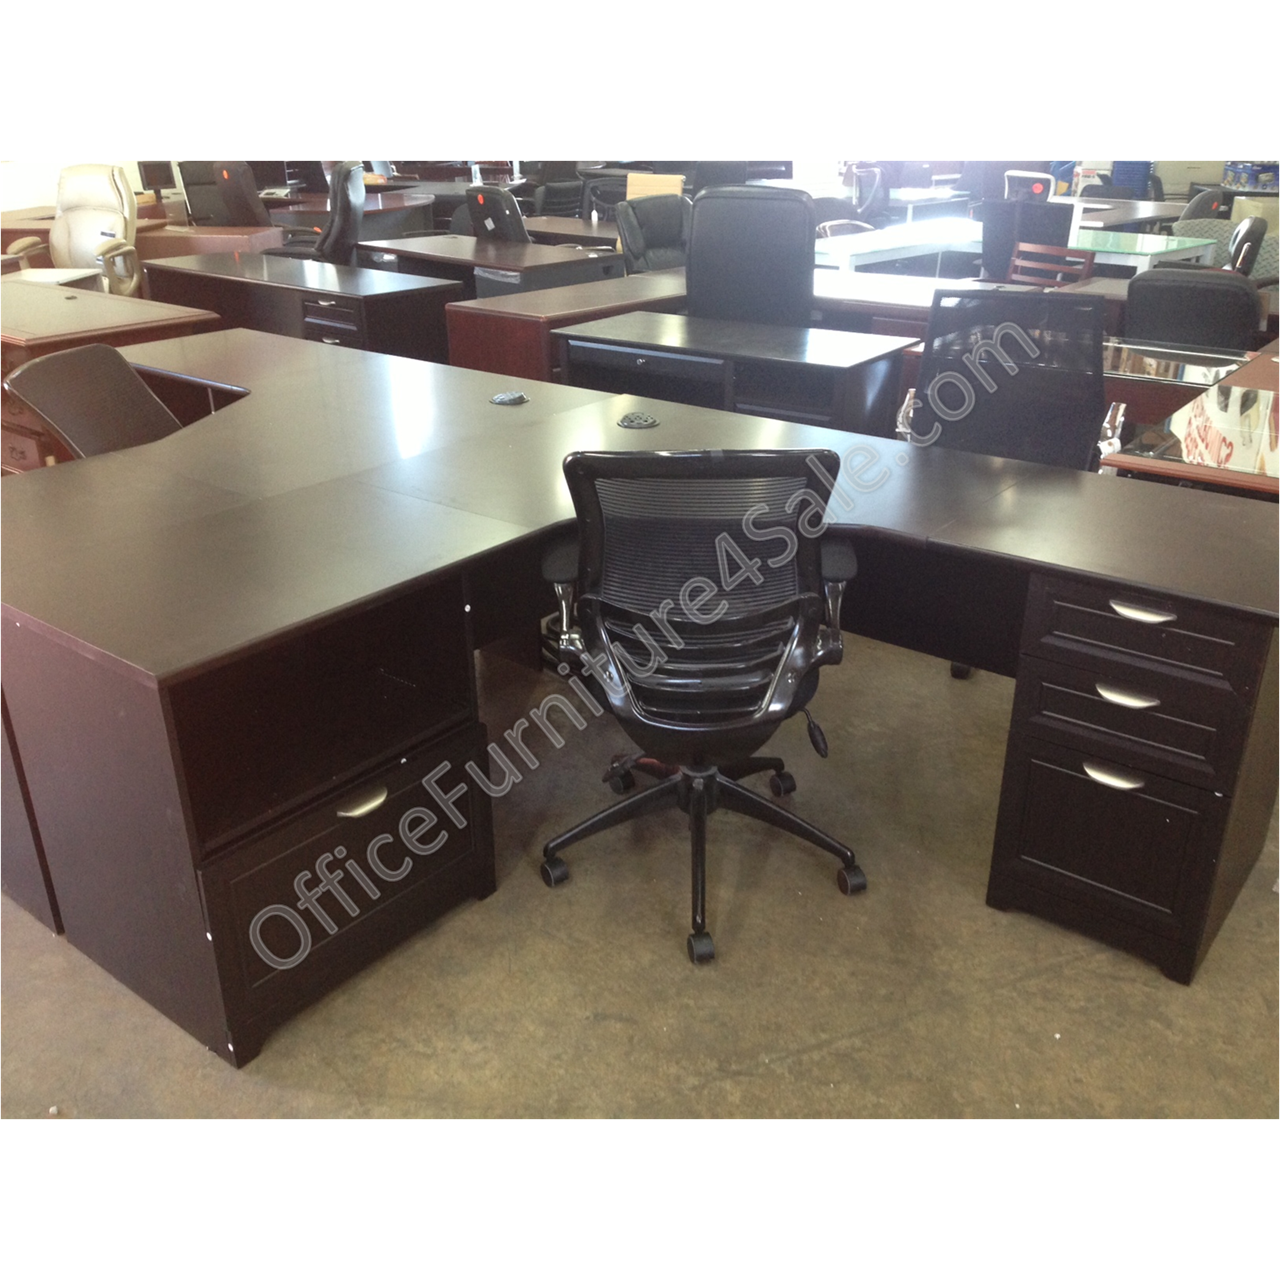 Realspace Magellan Performance Outlet L Desk 30 H X 70 9 10 W X 23